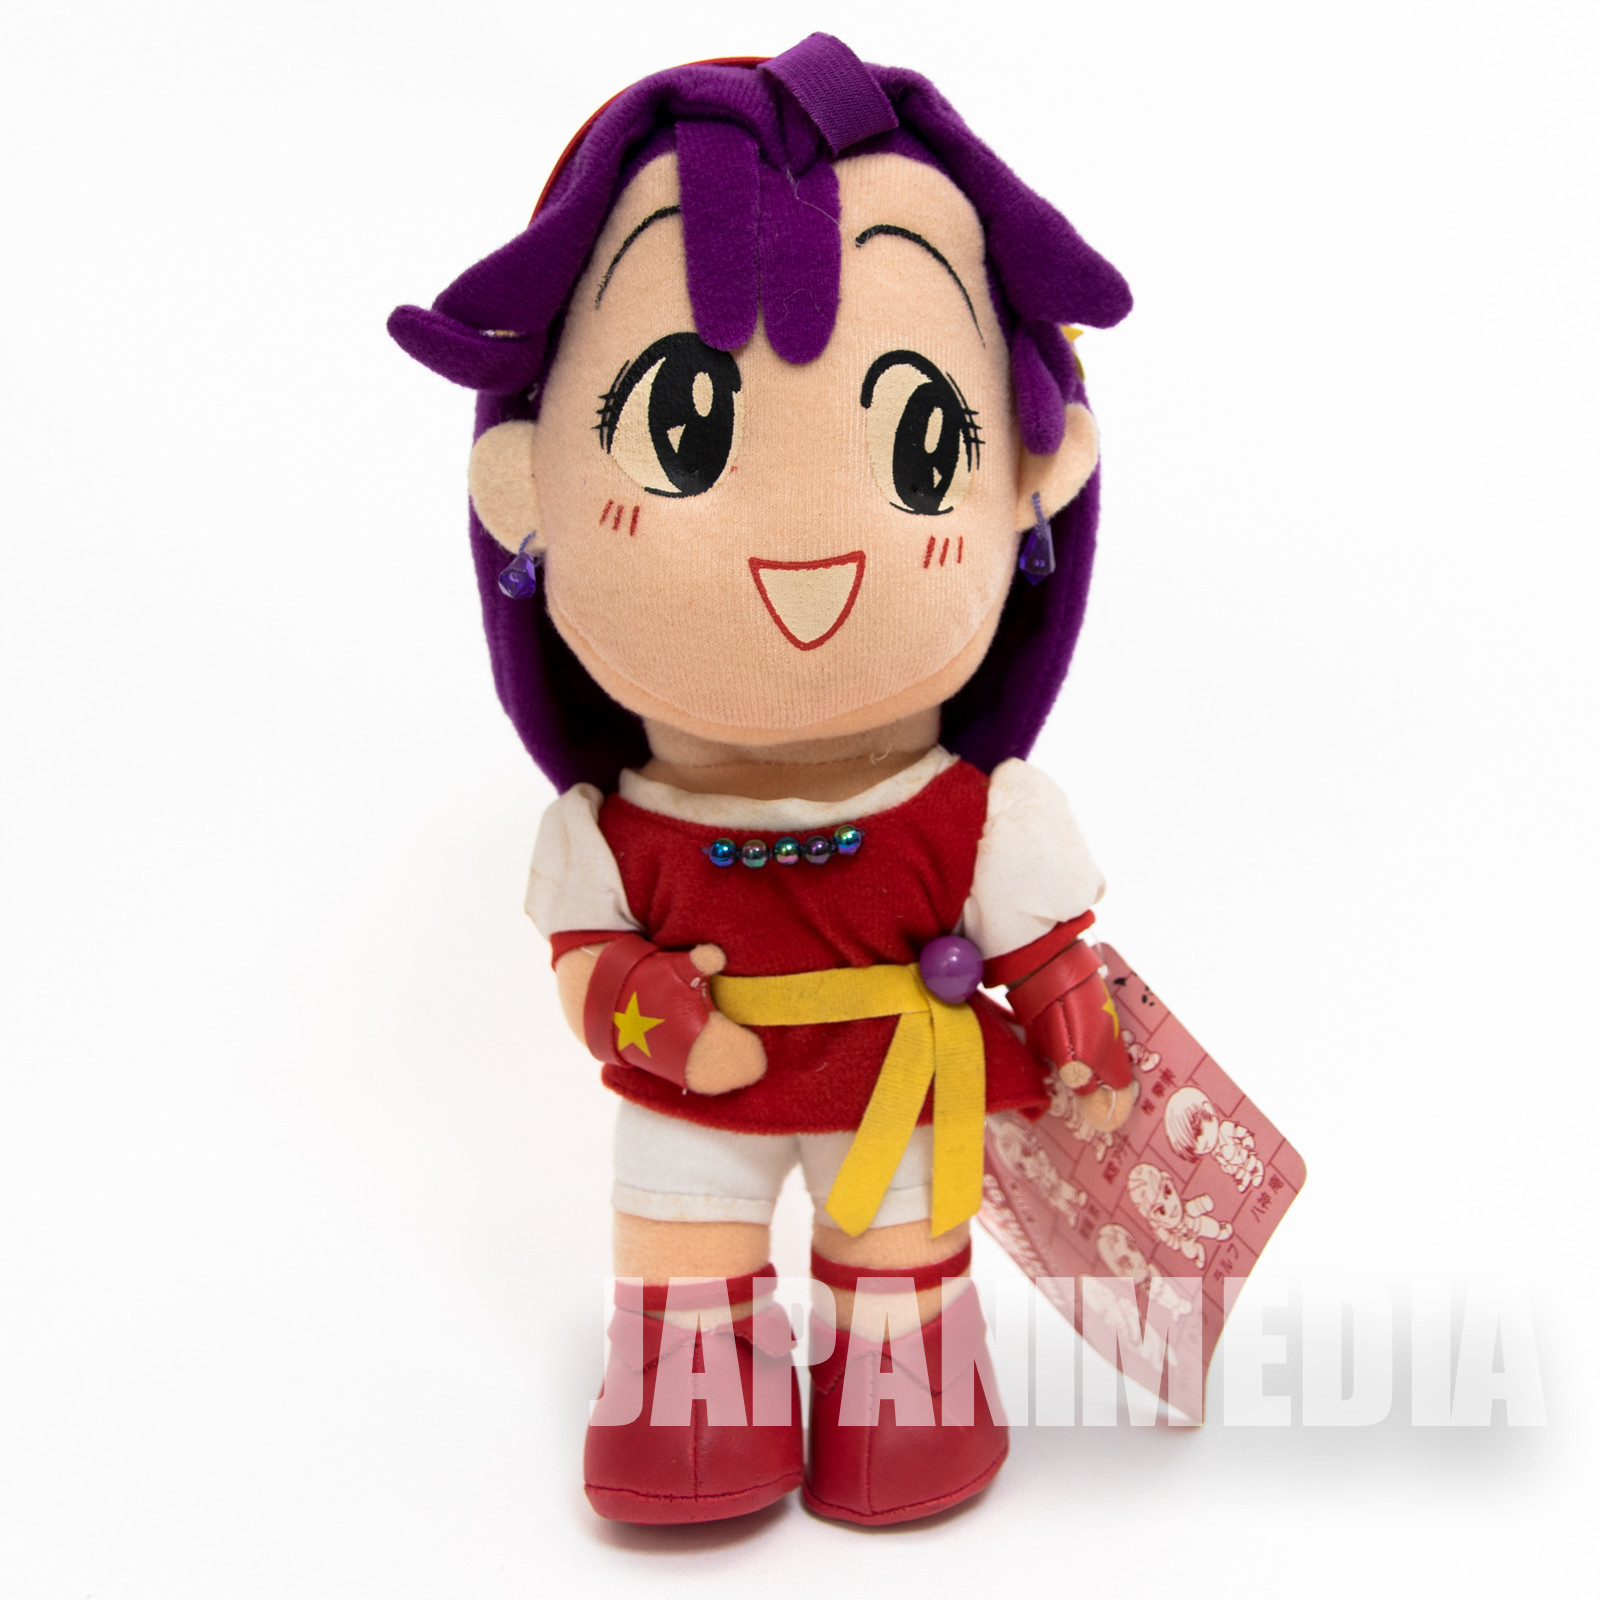 RARE! KOF King of Fighters Athena Asamiya Plush Doll SNK JAPAN NEO GEO